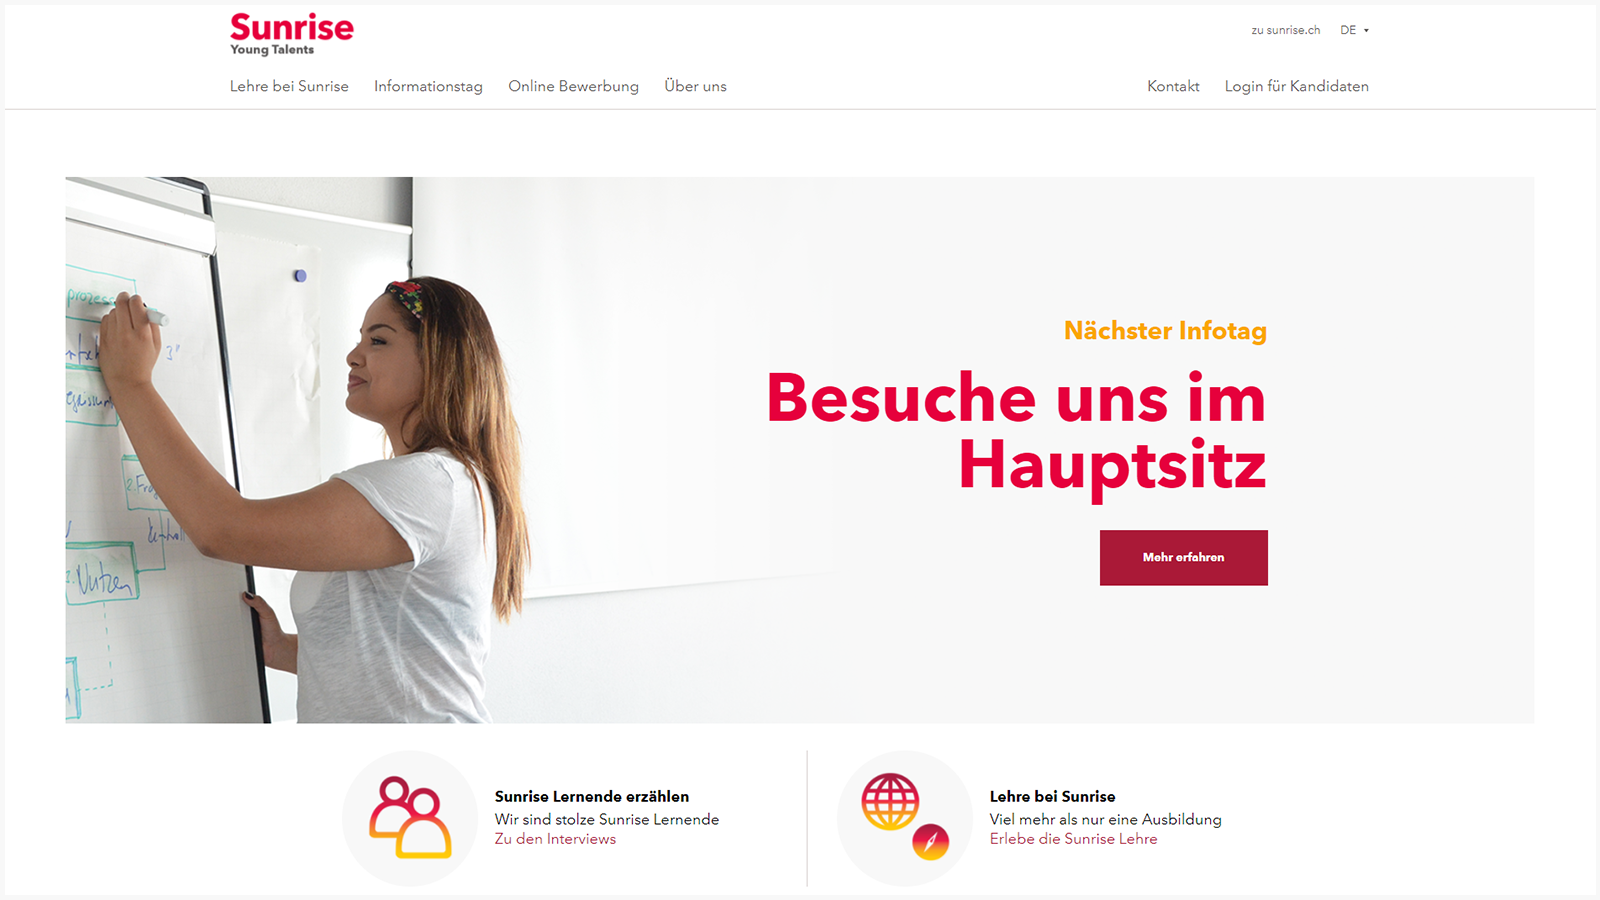 new website look new_rebrush_sunrise_young_talents_logo_image_1600x900 - Real Online Bewerbung